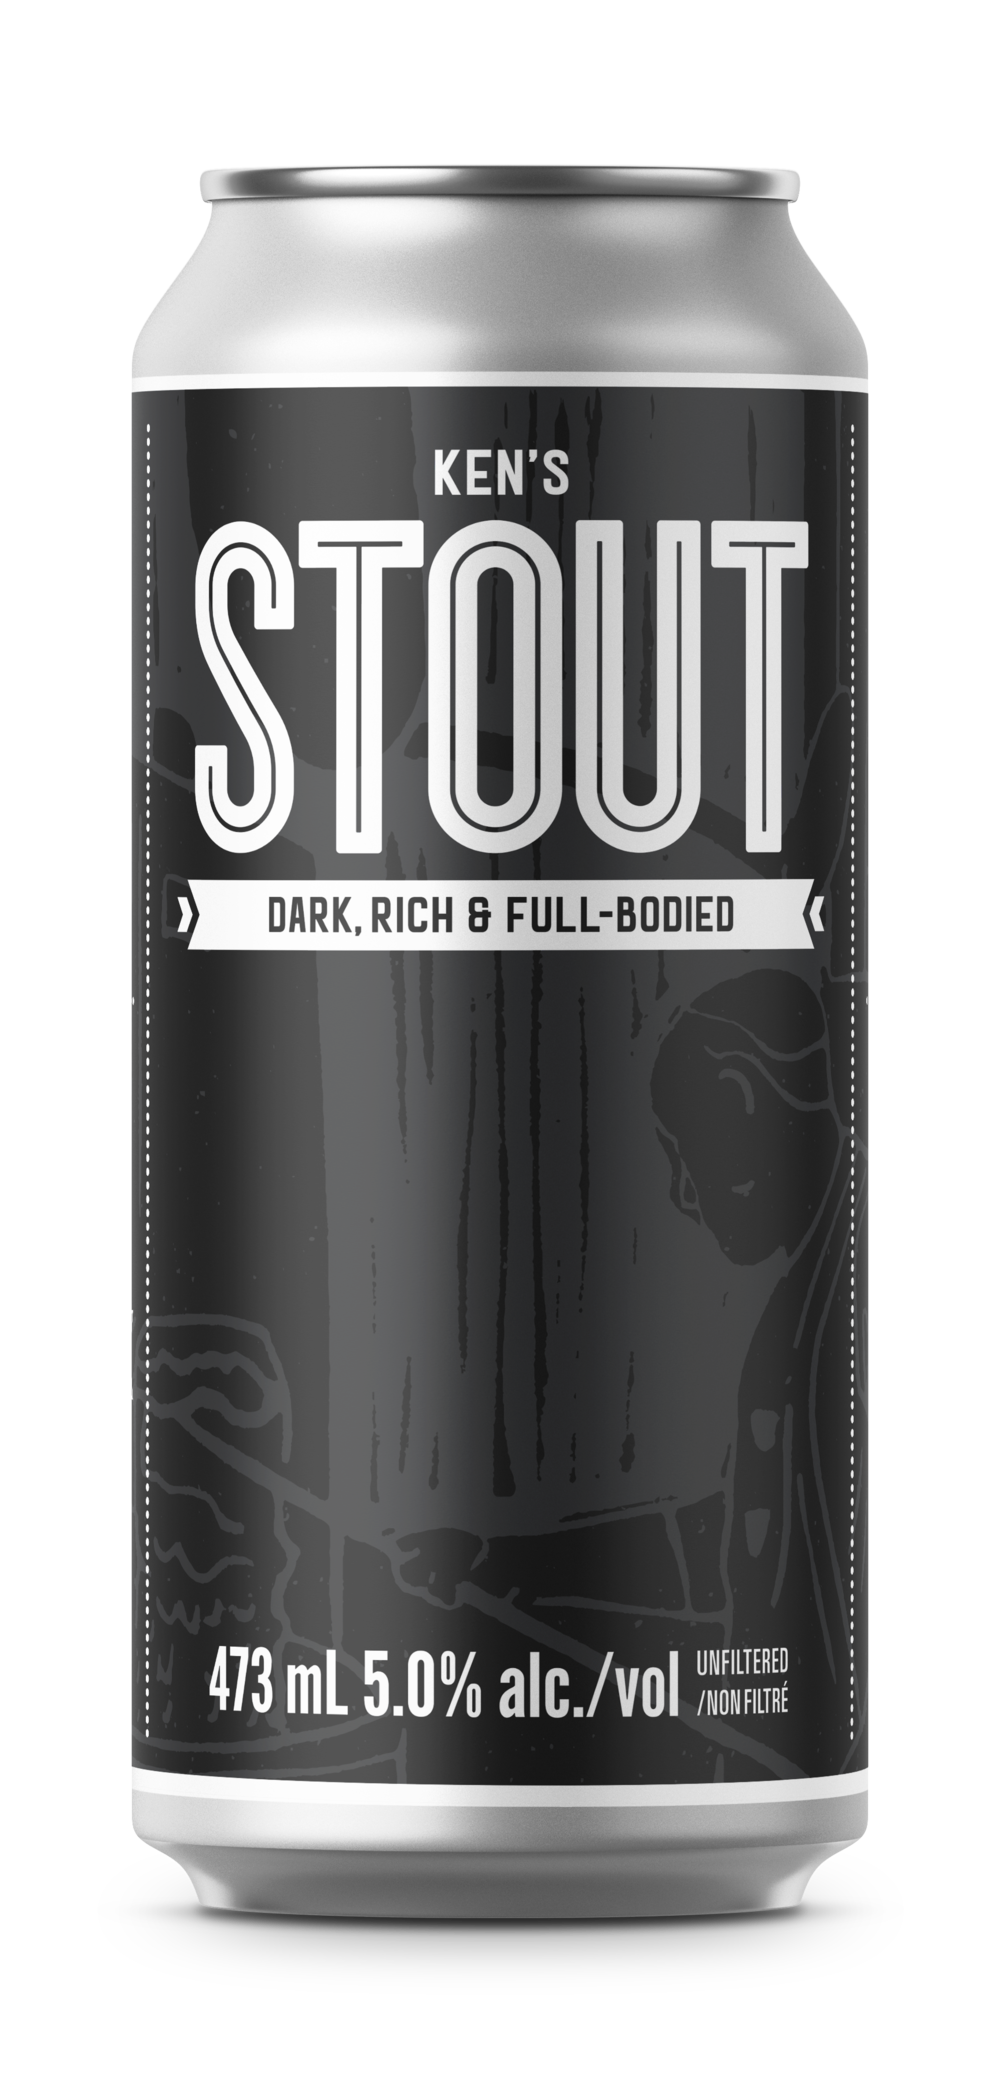 CB STOUT Beer Can.png